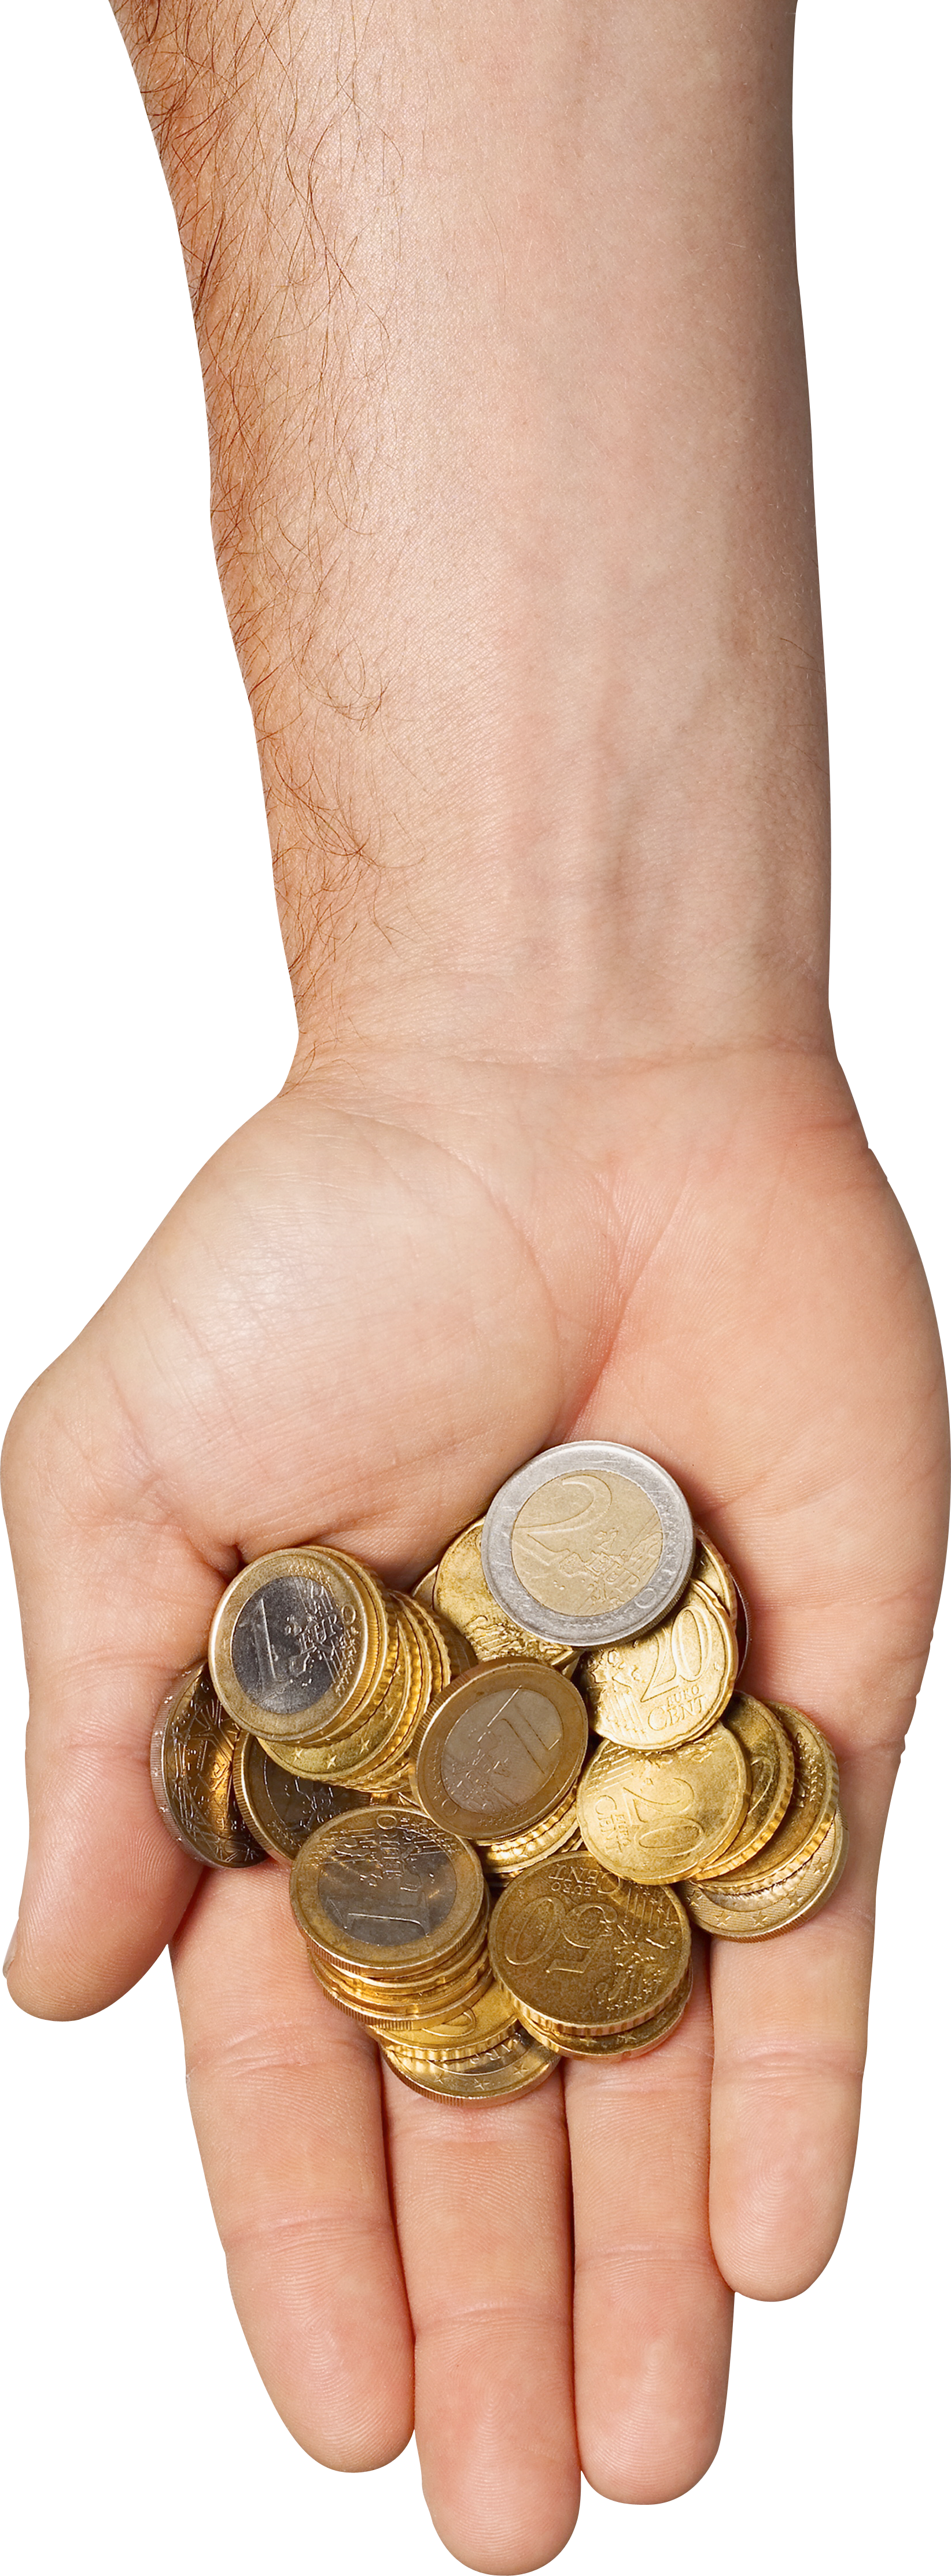 Money On Hand PNG Image